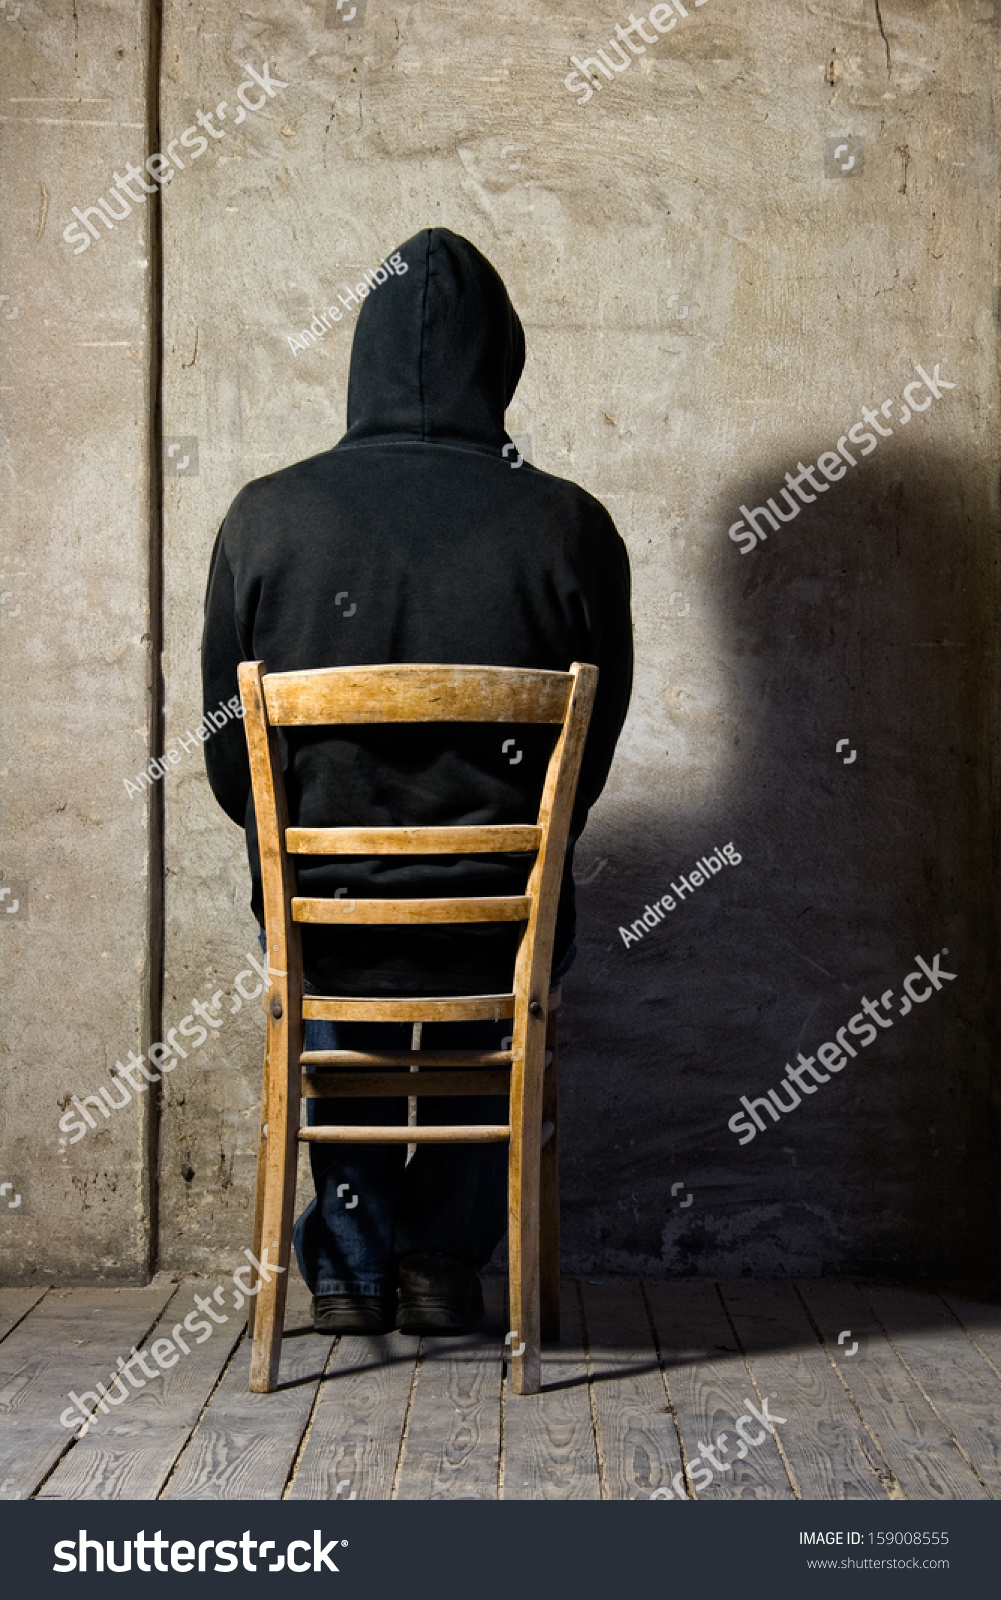 Hooded man sitting